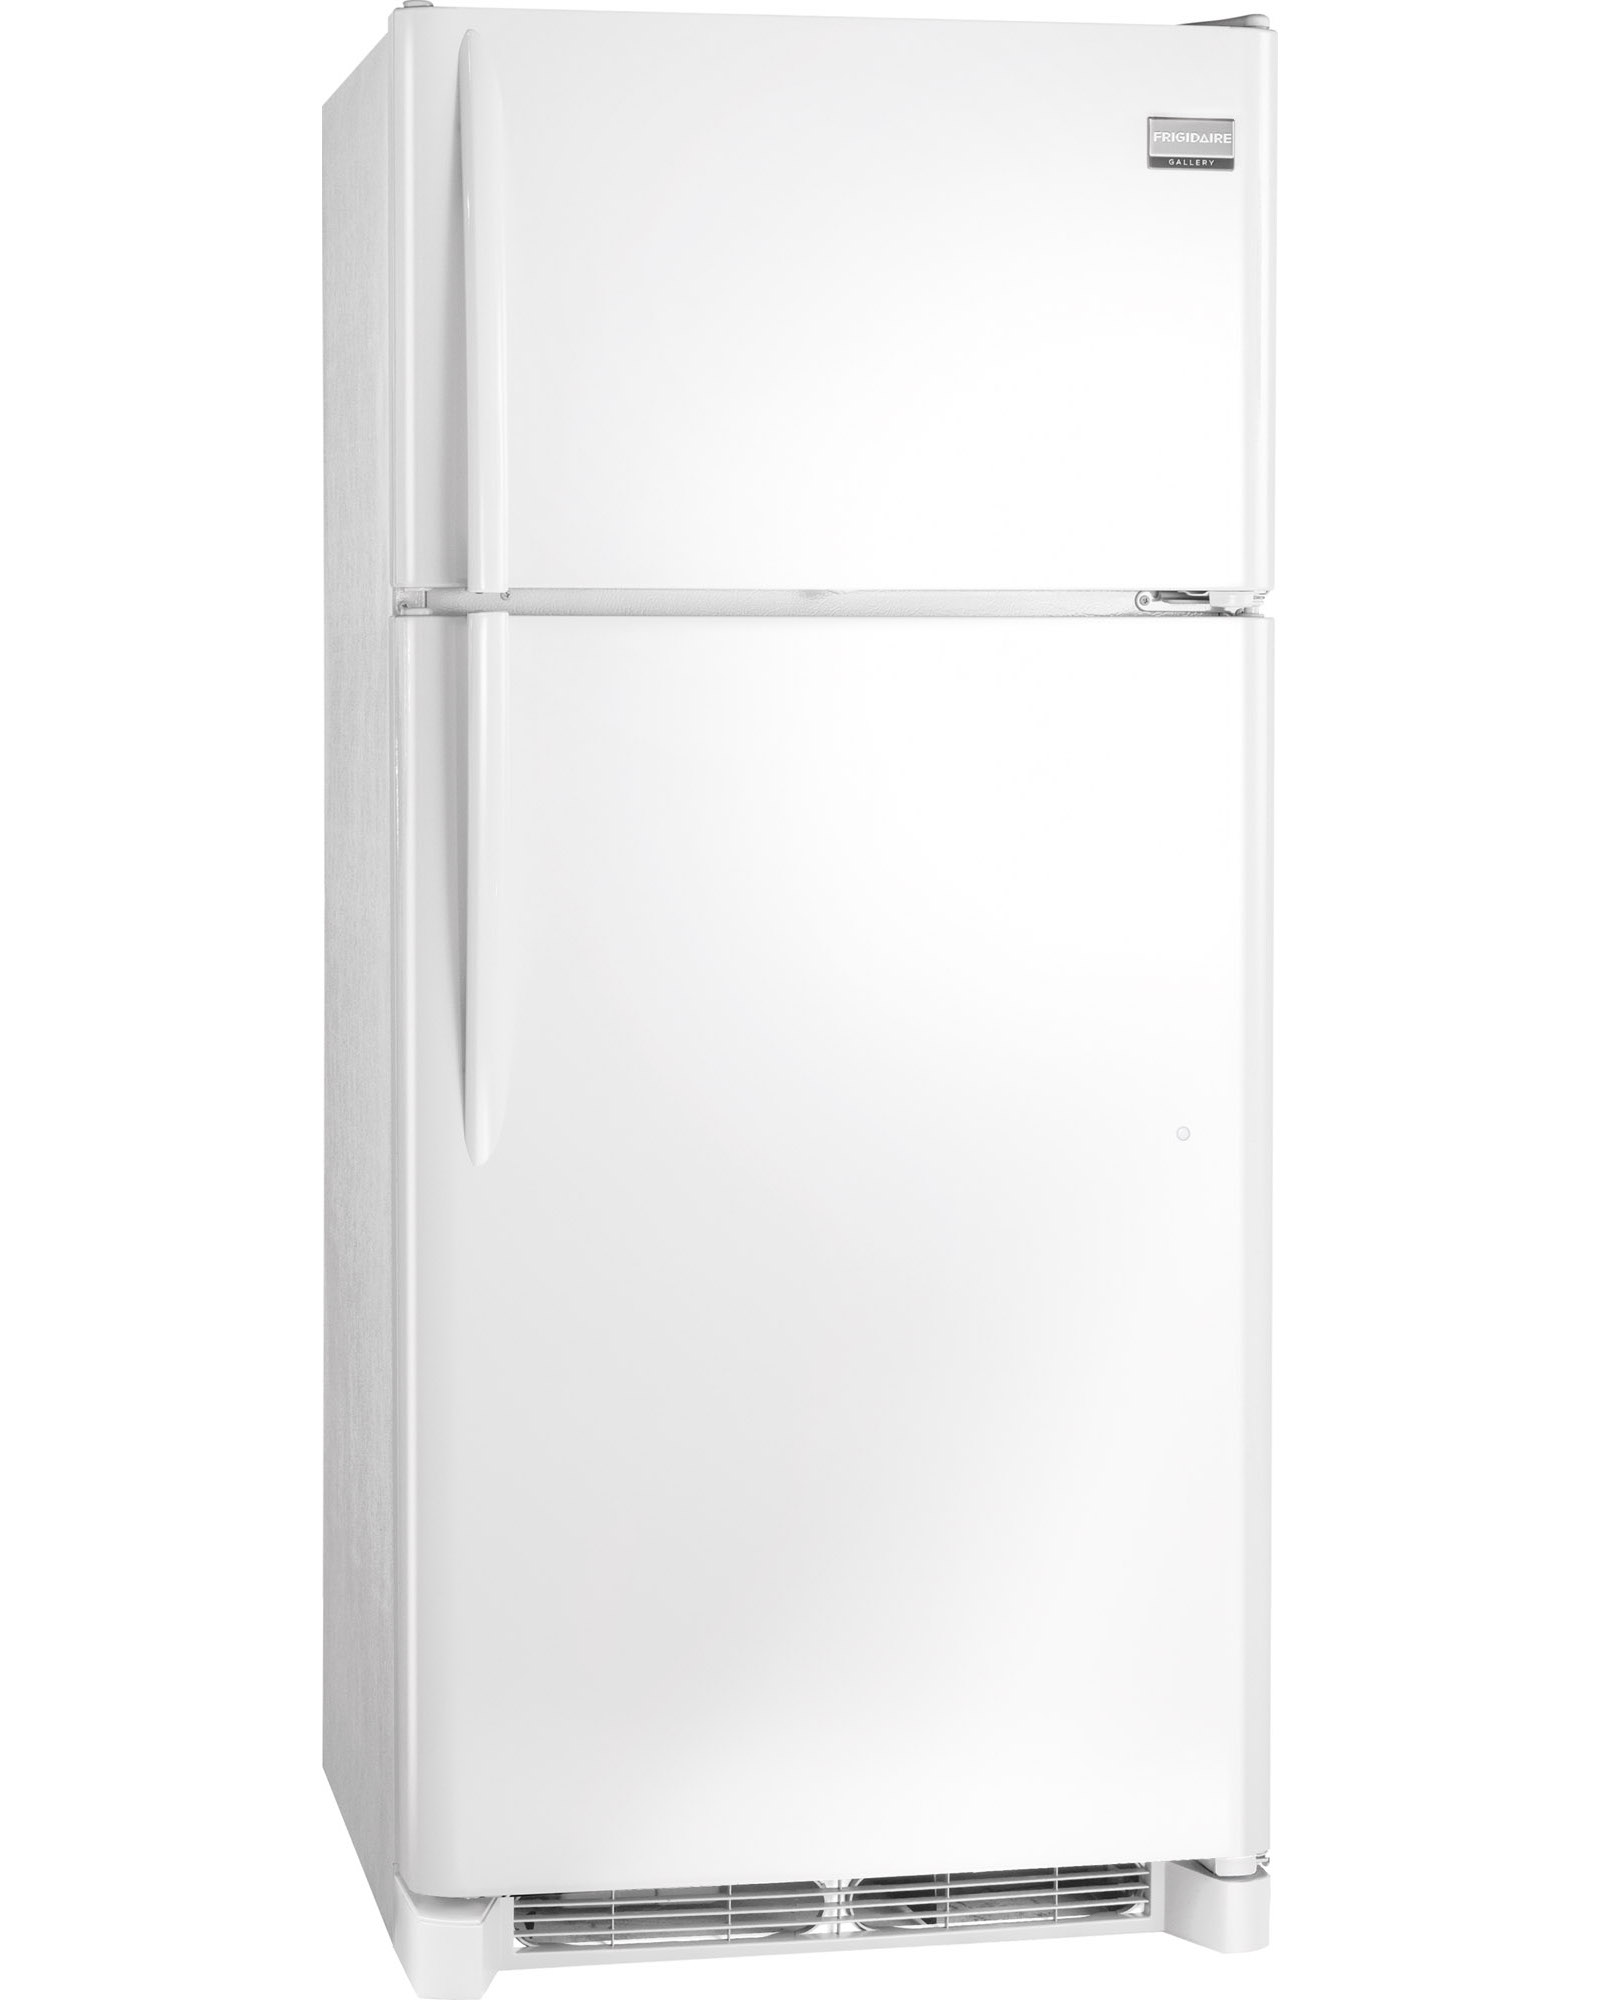 Frigidaire Gallery FGHT1846QP 18 cu. ft. Top Freezer Refrigerator - White